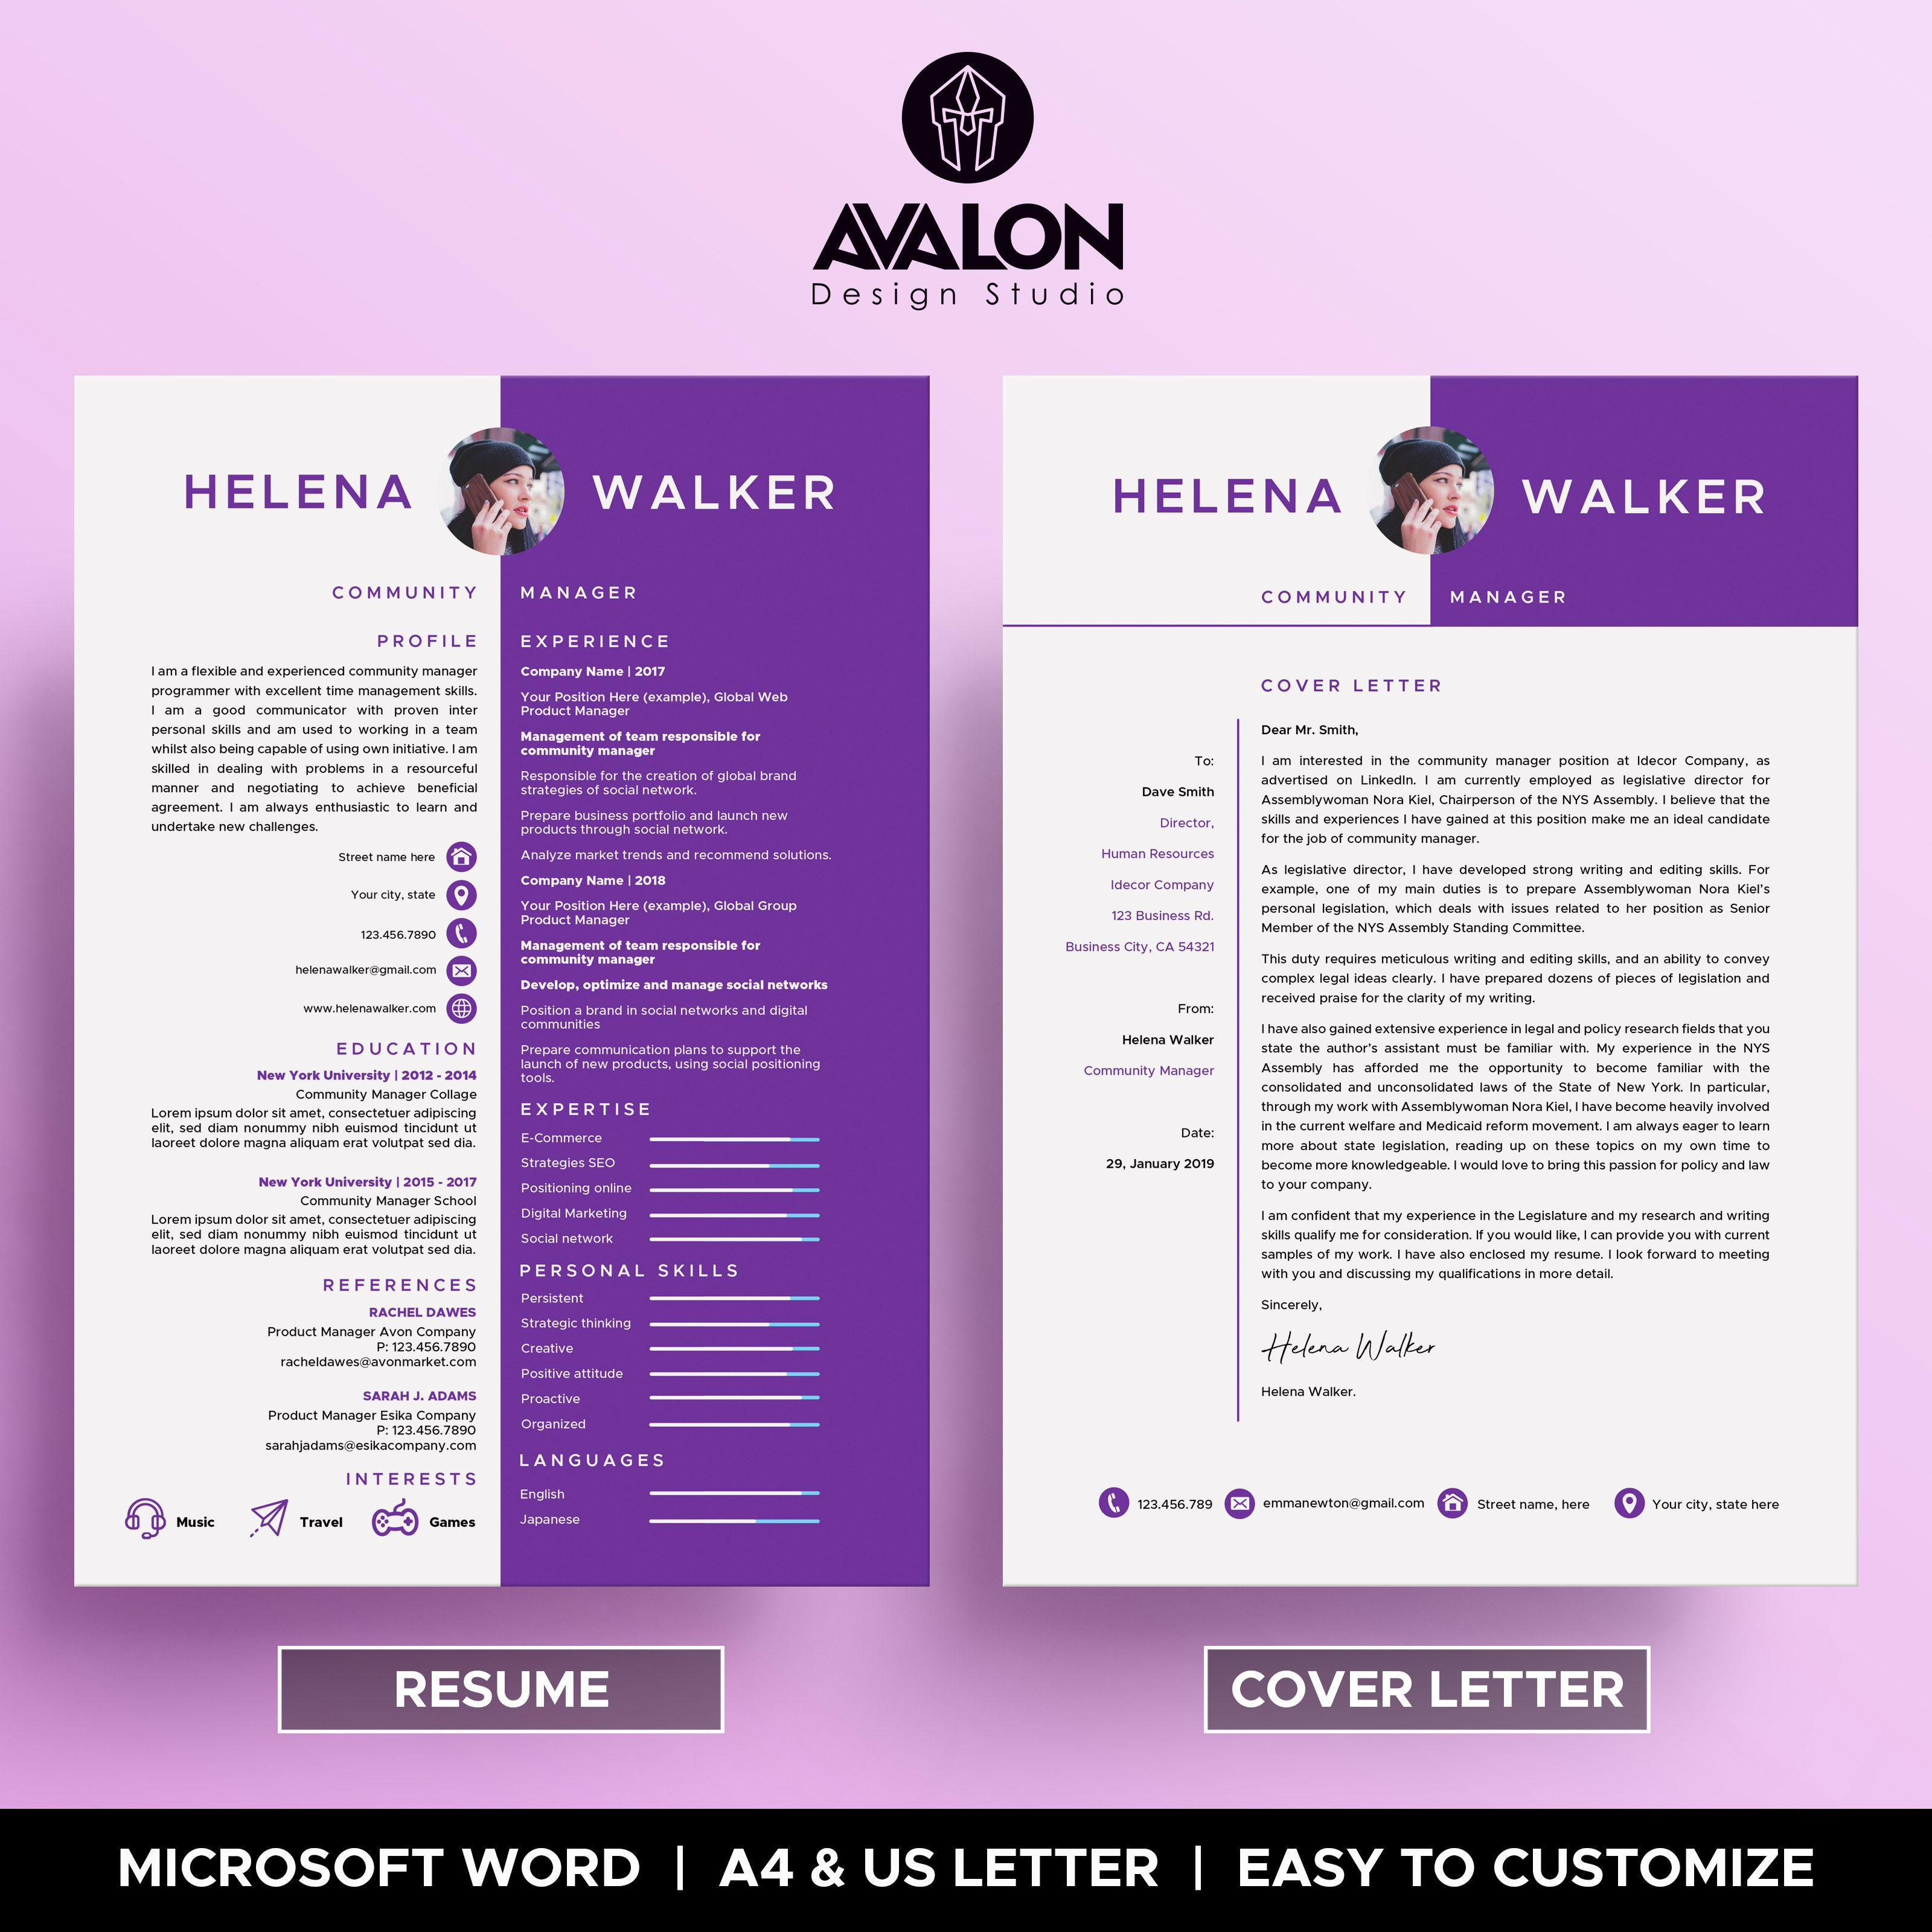 Professional Experience Resume Template For Microsoft Word 2 Pages Full Editable Instant Download Resume Template Resume Words Cover Letter For Resume